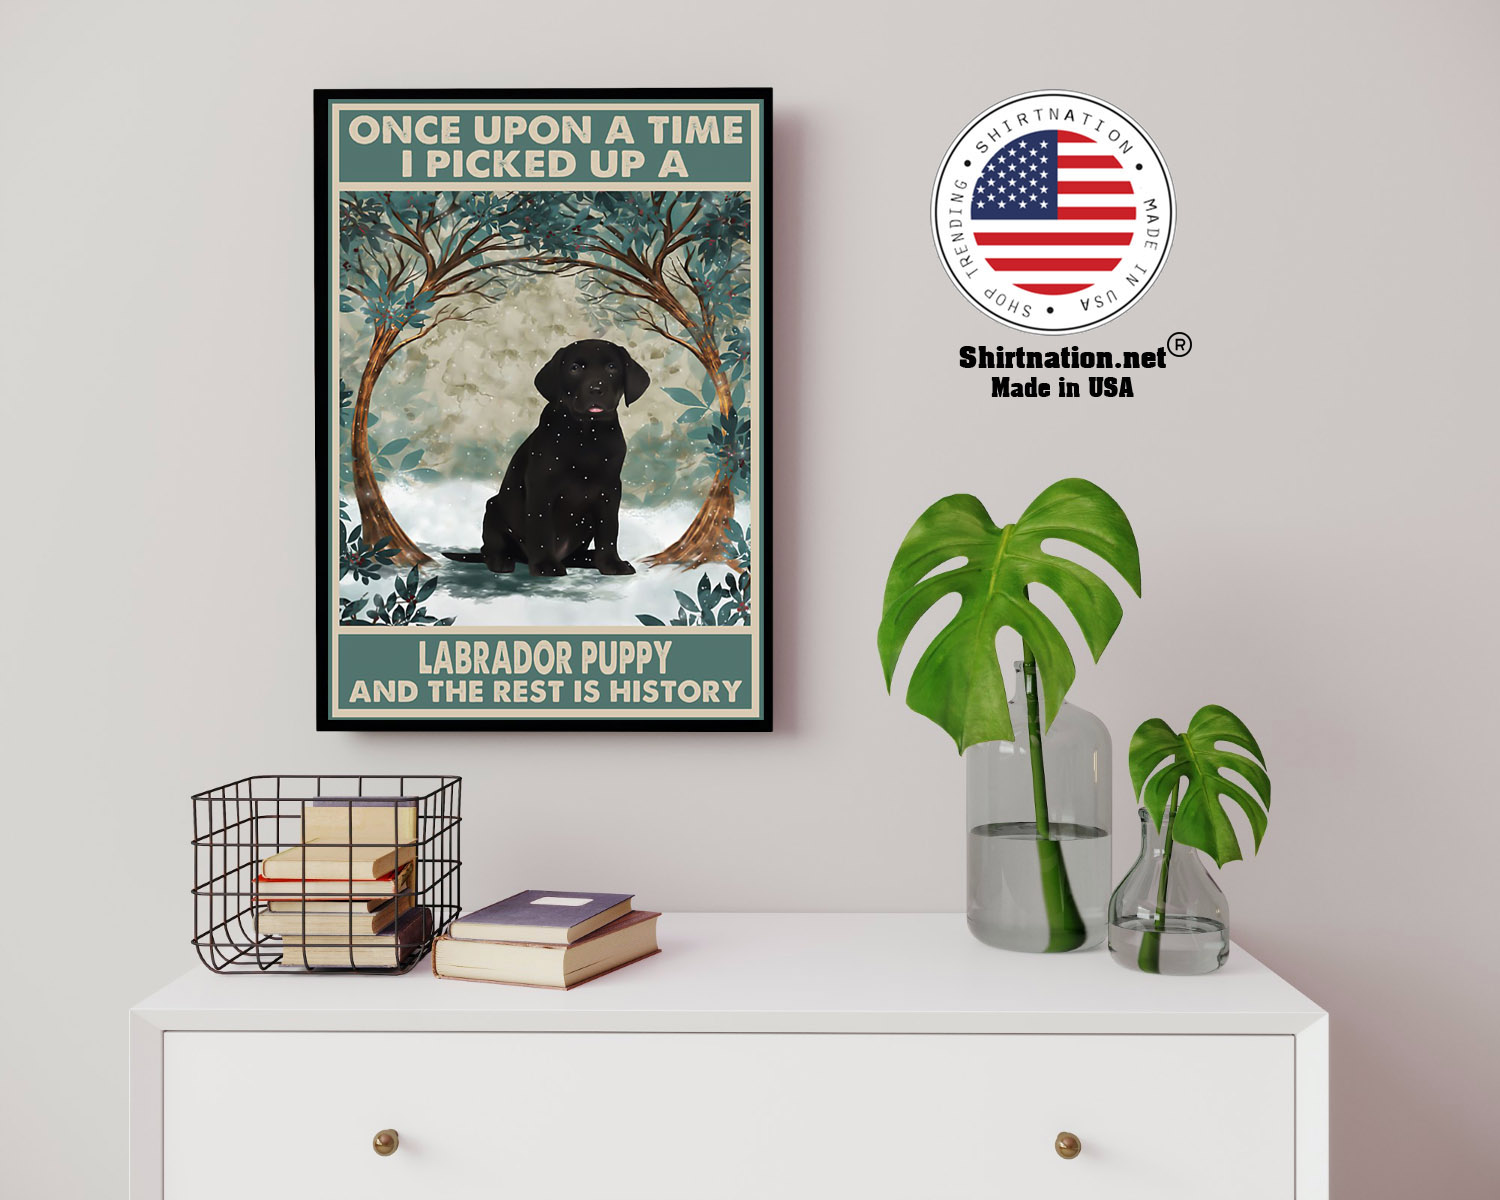 Once upon a time I picked up a labrador puppy and the rest is history poster 14